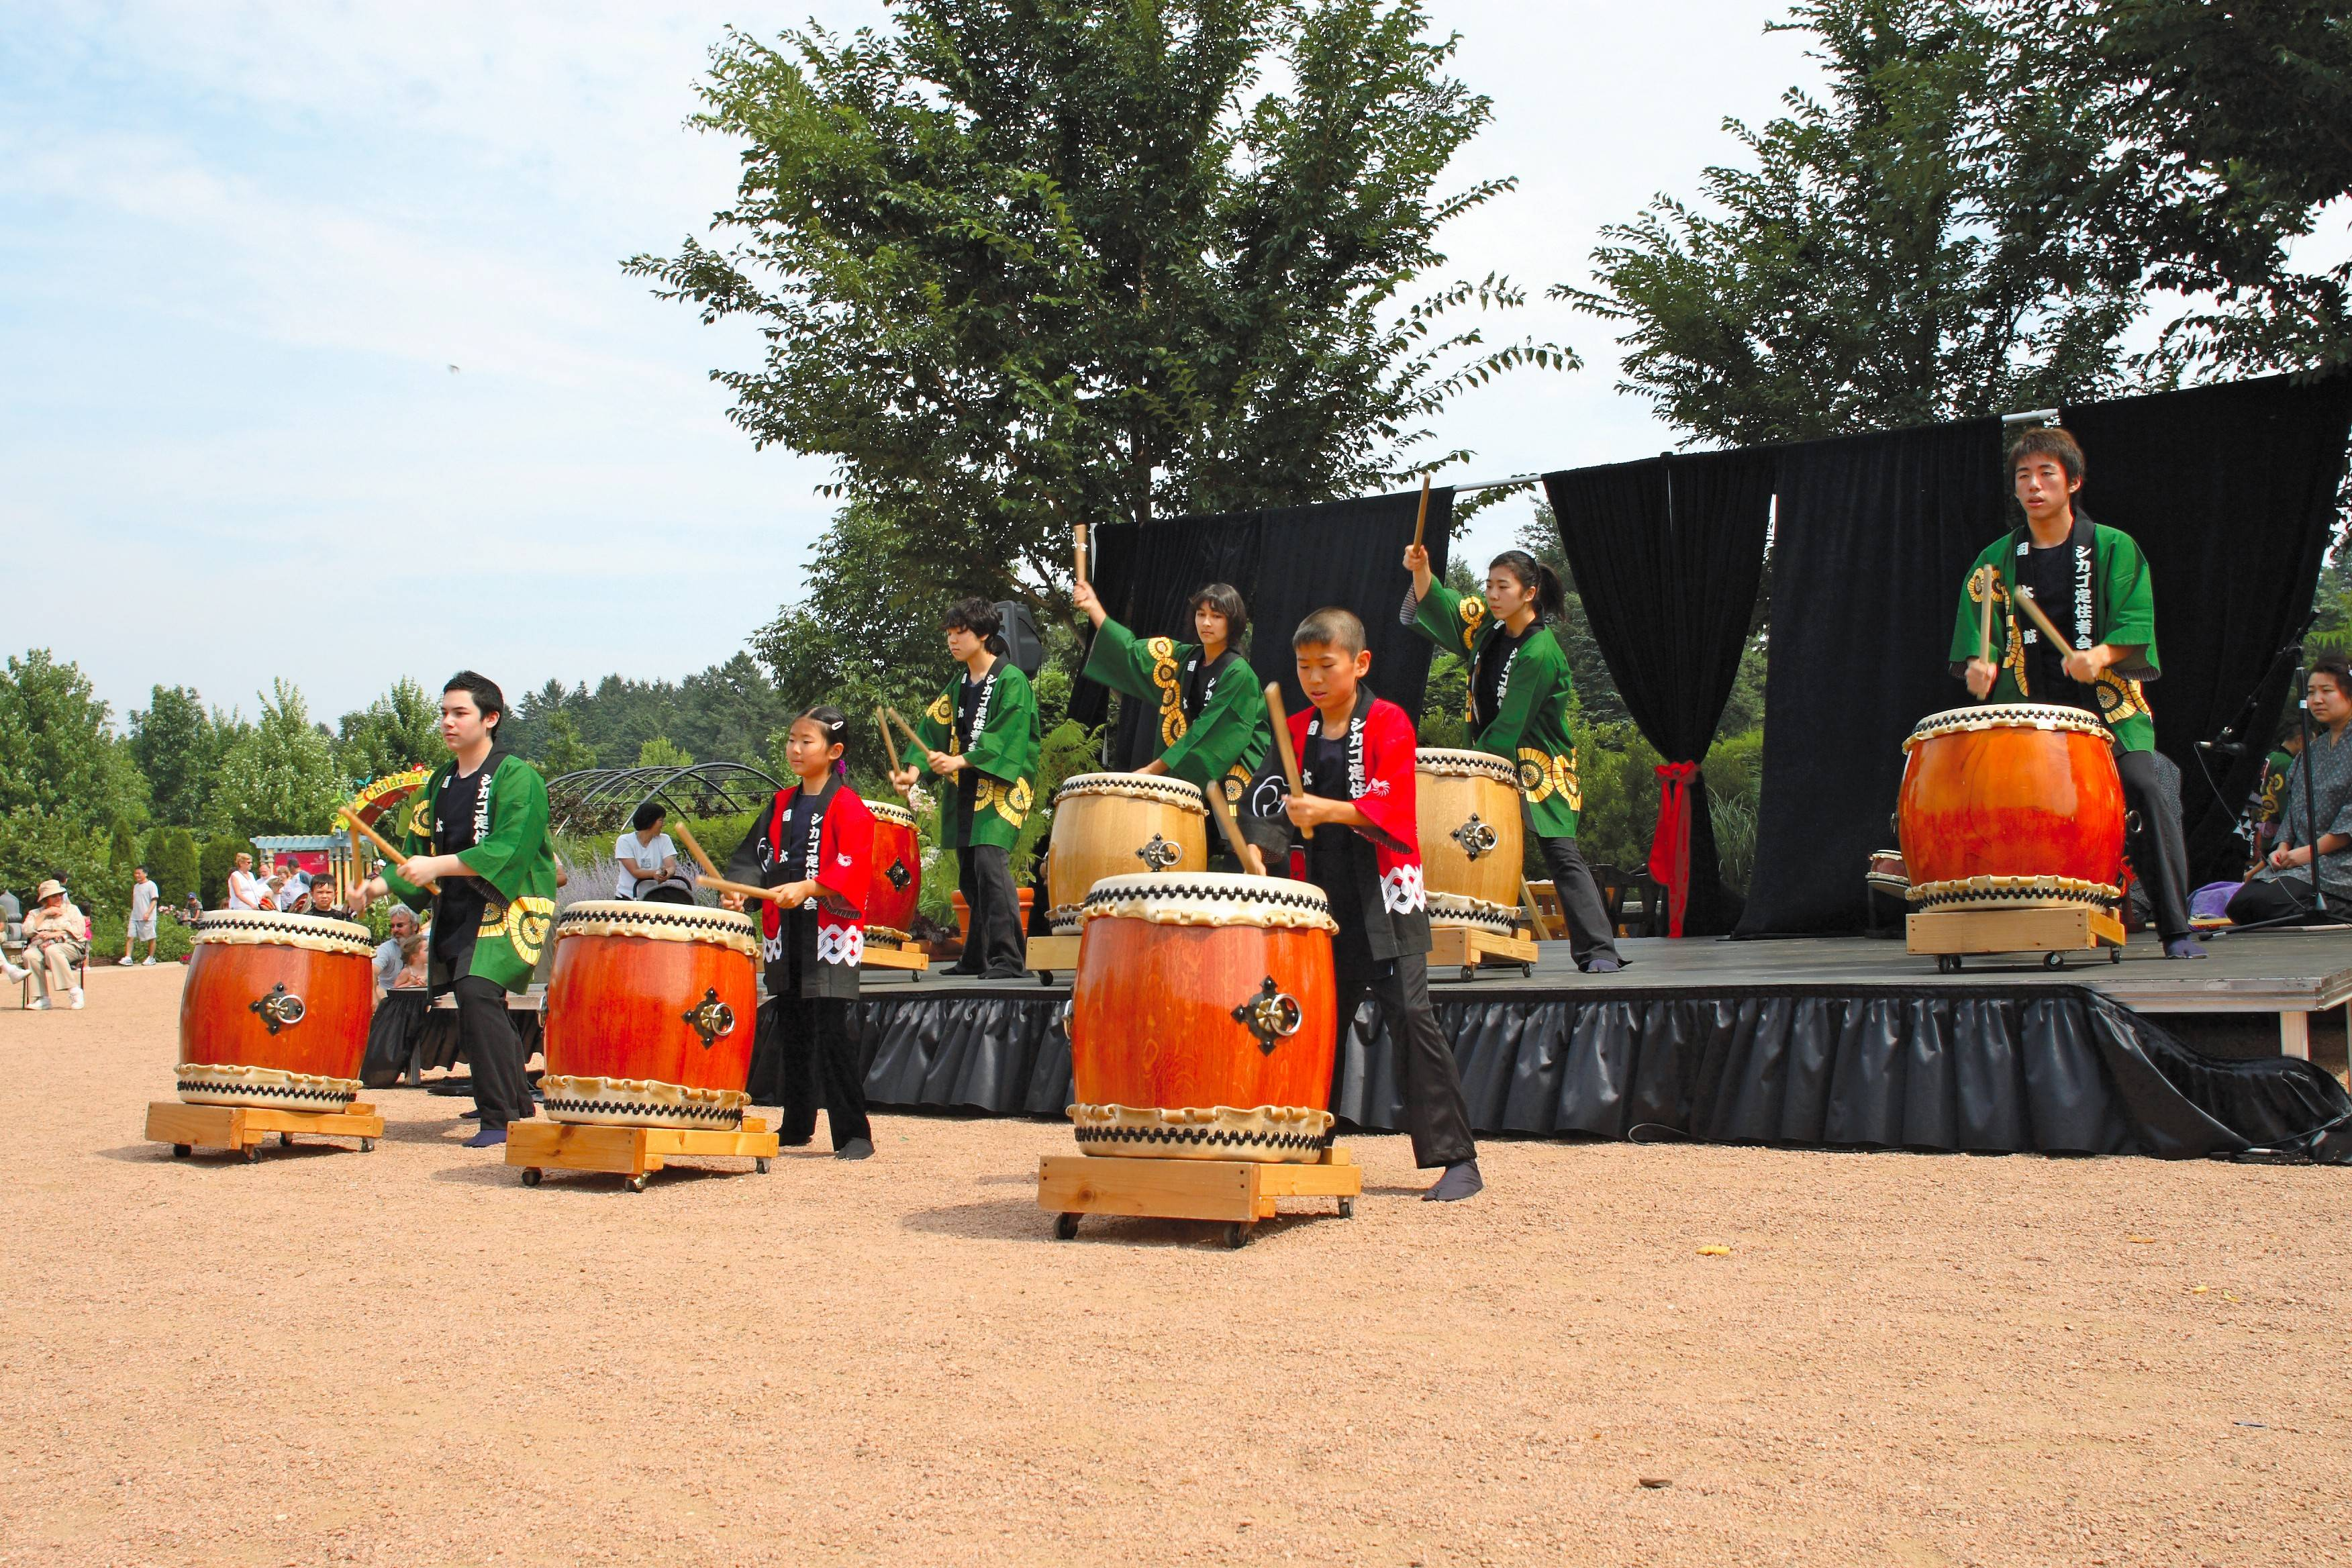 The Tsukasa Taiko Drummers are part of the mix for the Destination Asia Festival this weekend at the Morton Arboretum in Lisle.